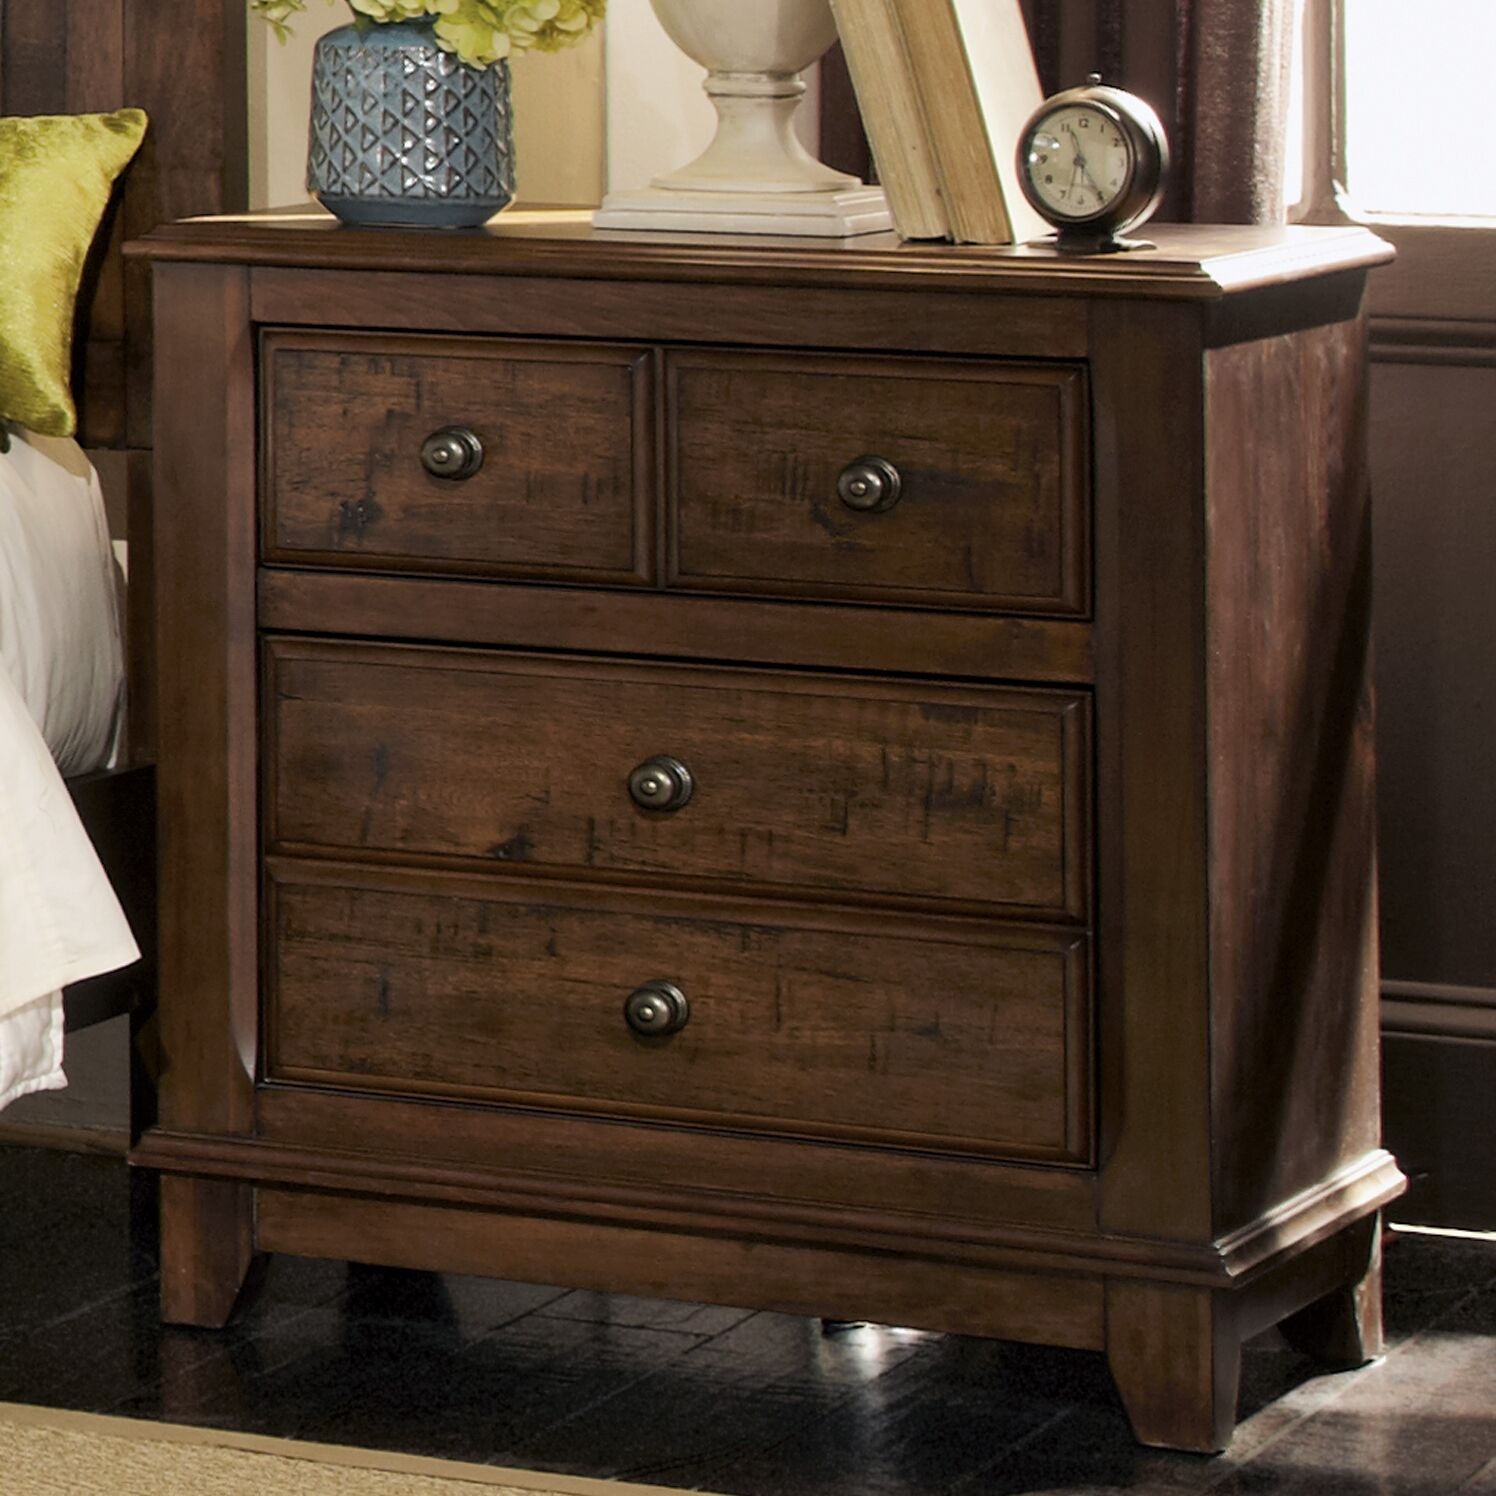 Momea 2 Drawer Nightstand